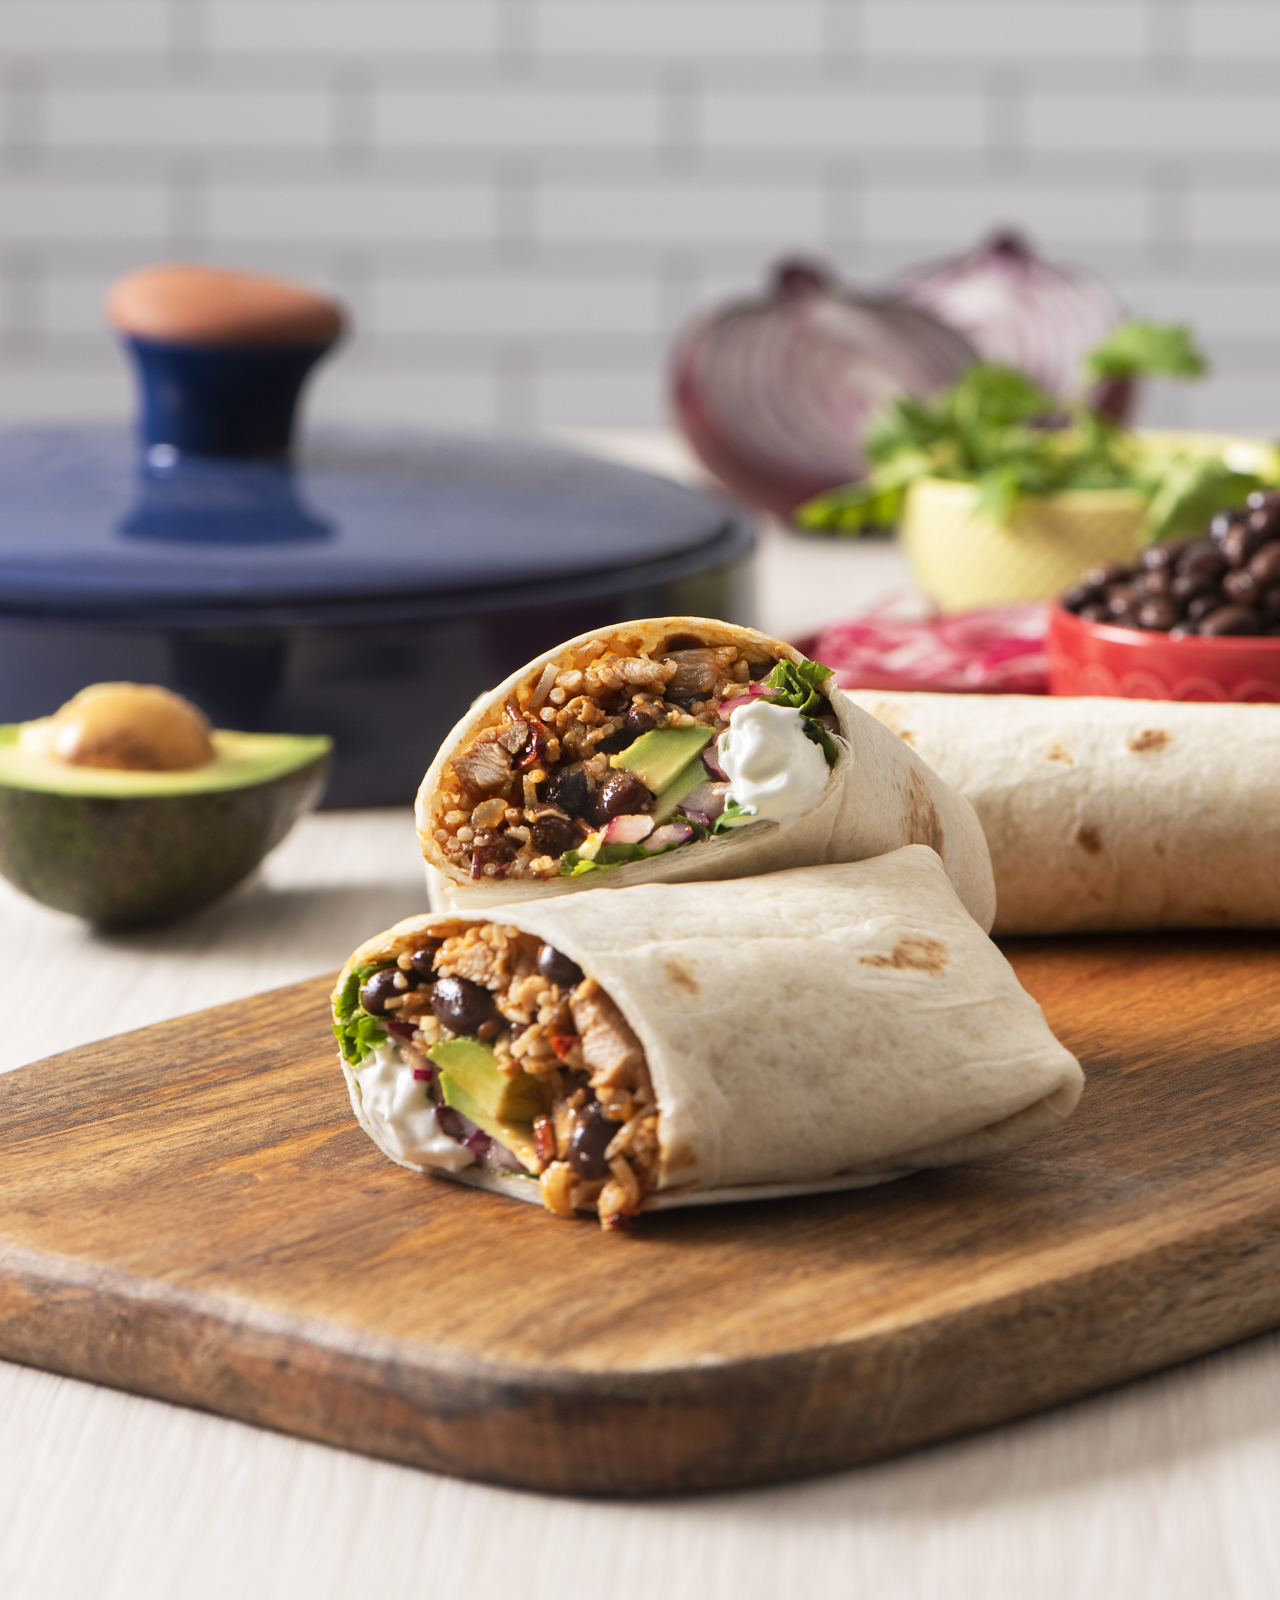 Slow Cooker Chipotle Chicken Burrito Recipe